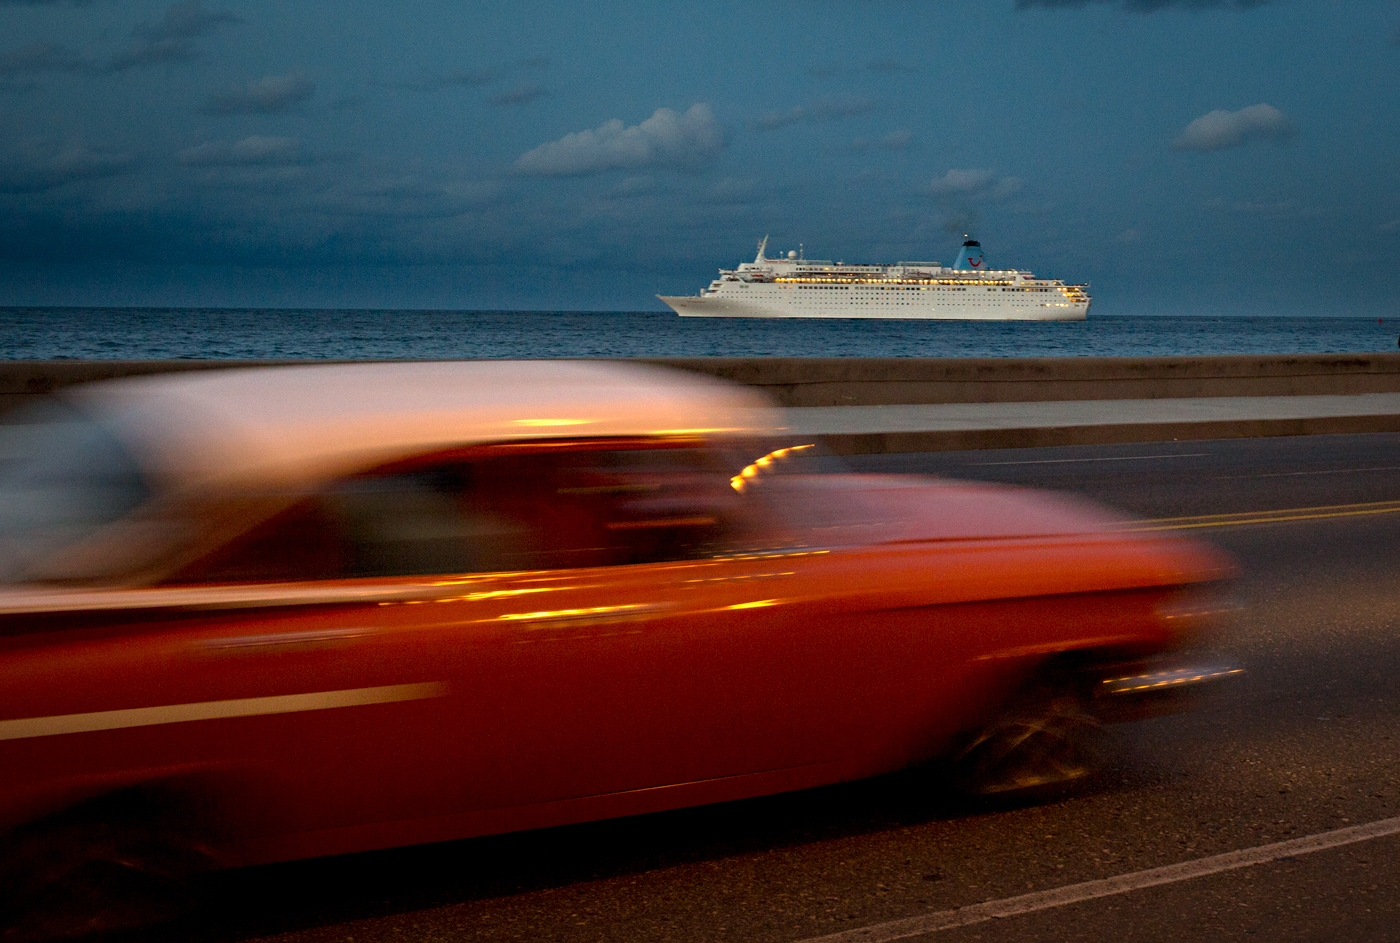 A luxury cruise ship navigates its way slowly in Havana waters passing in front of The Malecón. The Malecón (sea wall) was first built in 1901 and later was expanded. The main purpose of it was to protect the City from the ocean waters-but aside from that, it now is a major promenade space for families, lovers, prostitutes and fishermen.